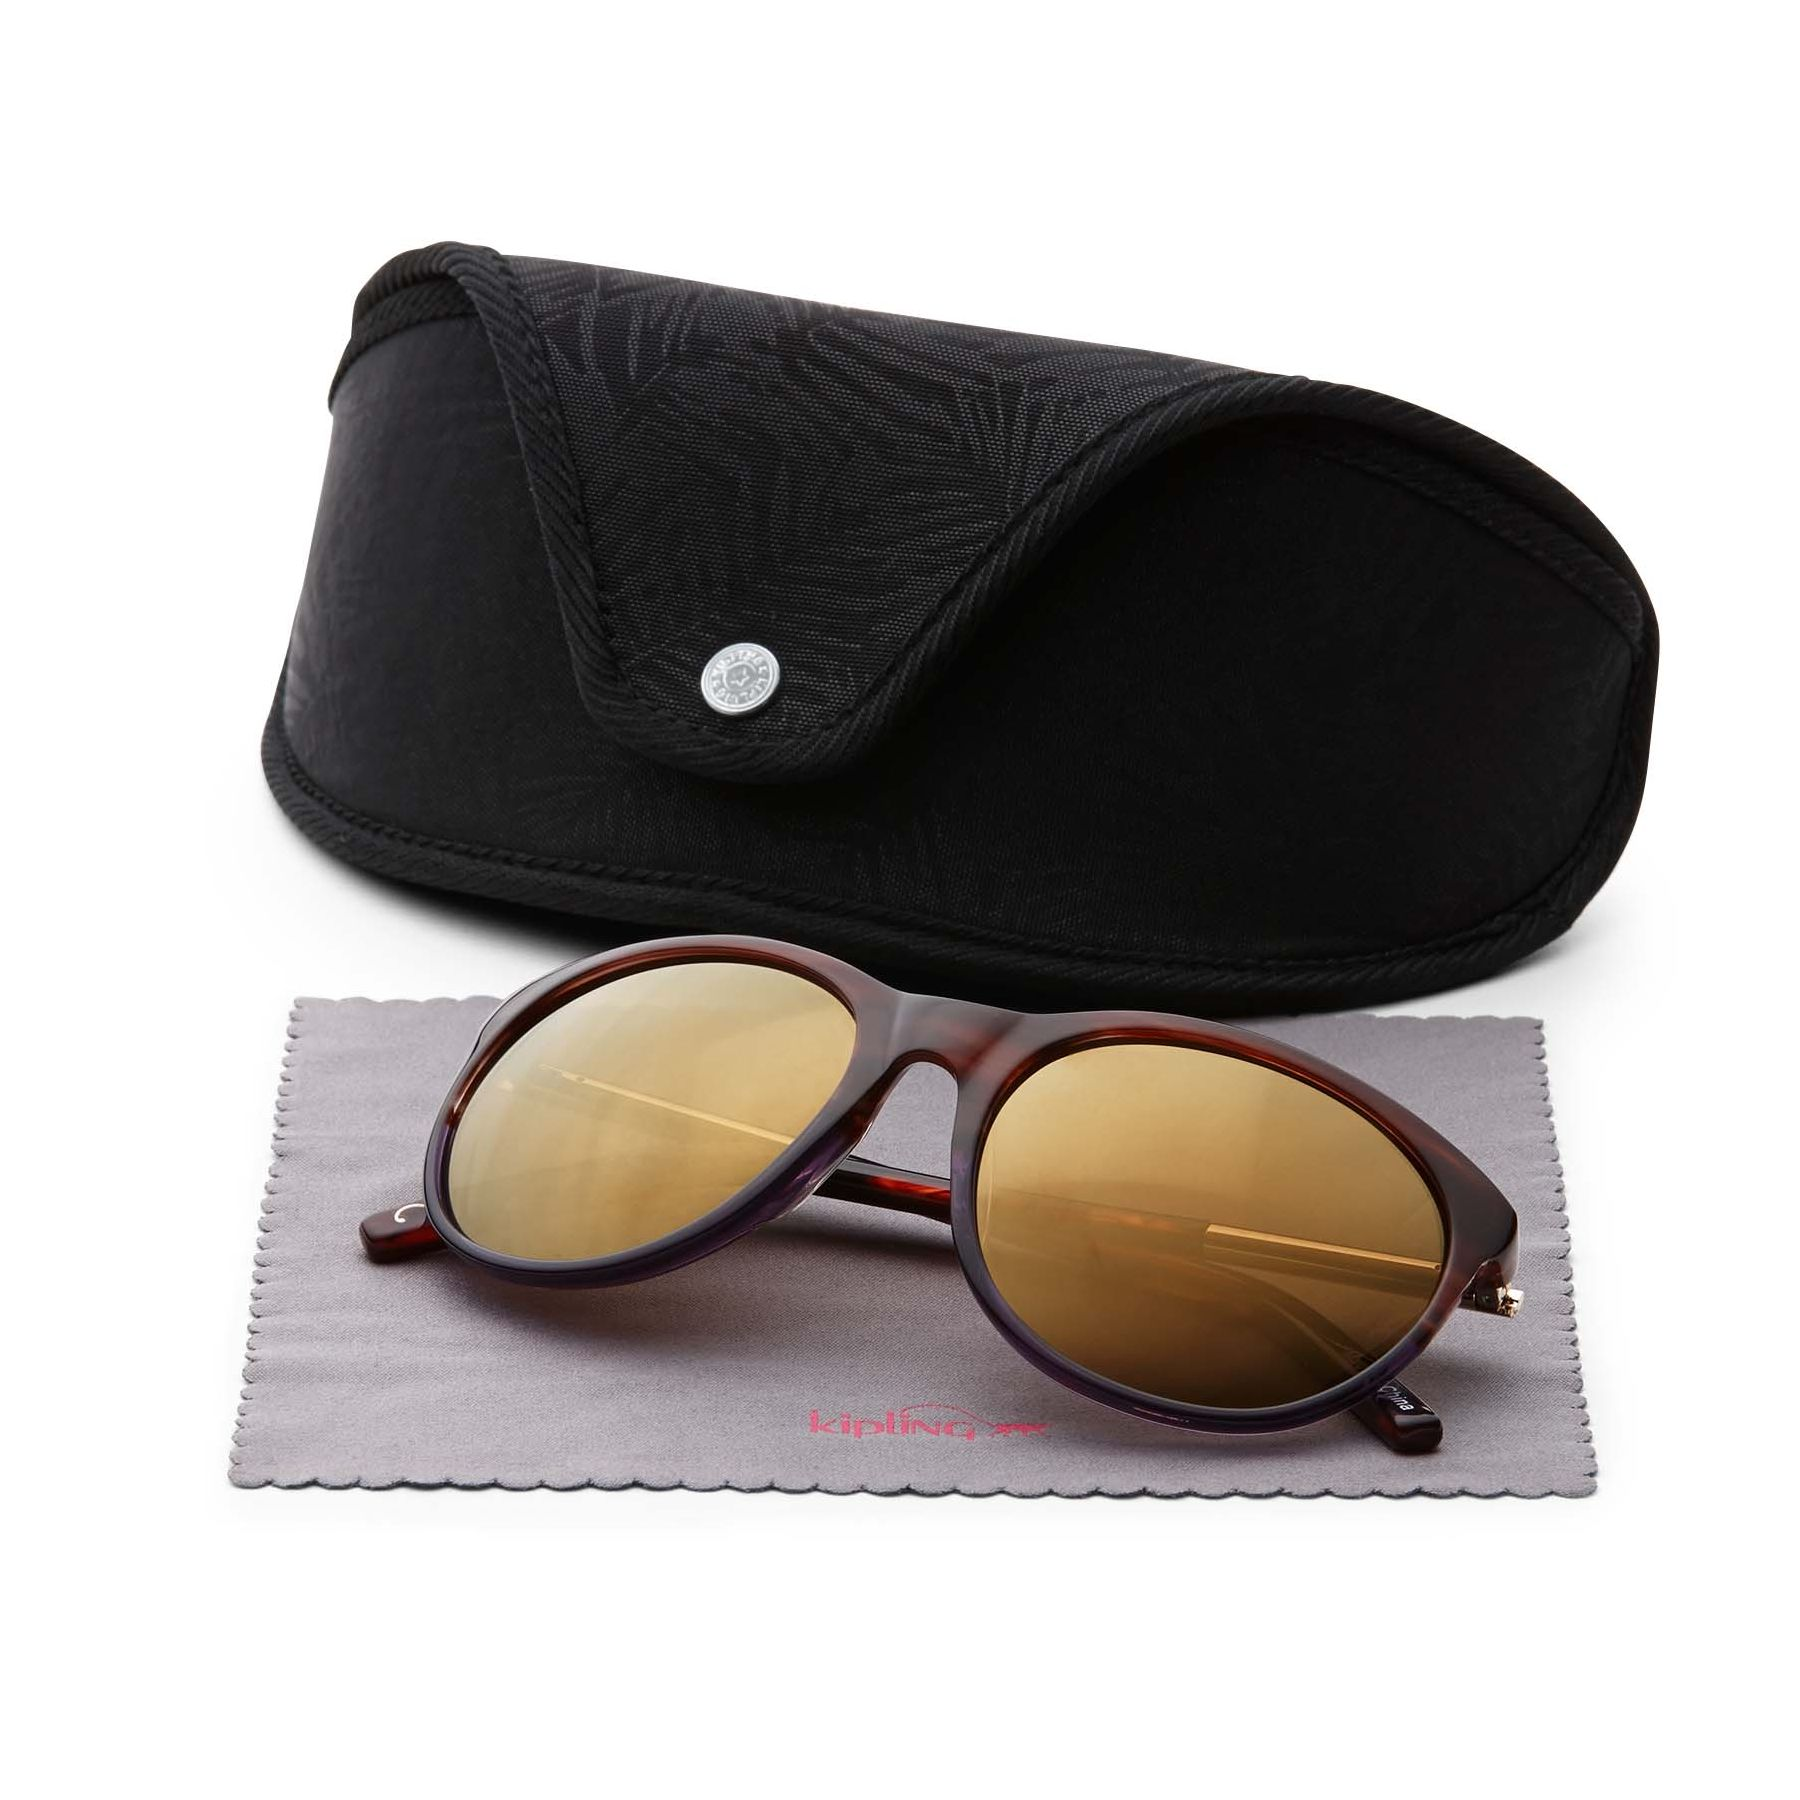 SUNGLASS RIVIER by Kipling - Back view